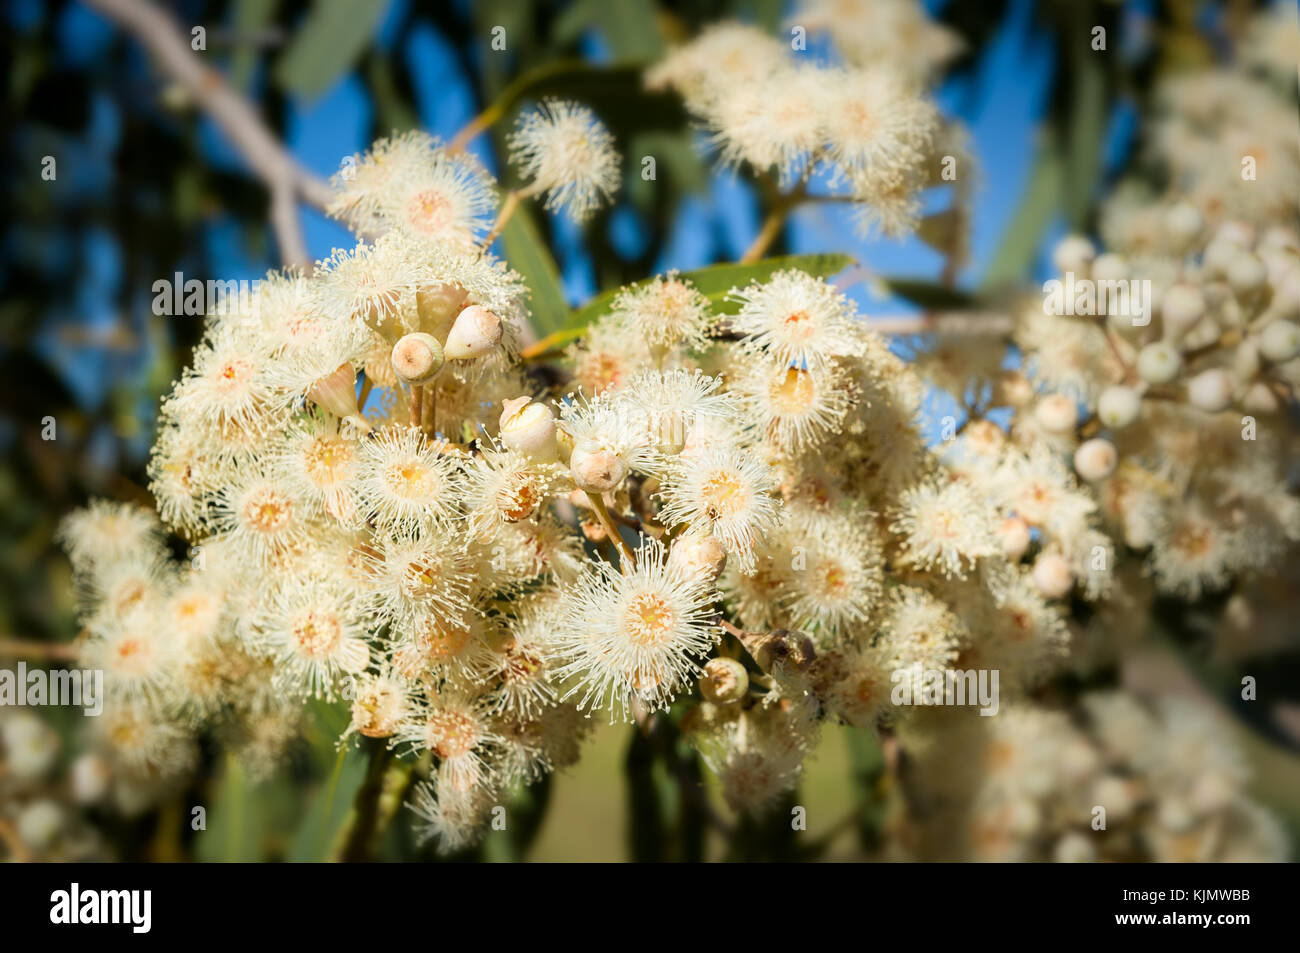 White blossom of a Ghost Gum. - Stock Image